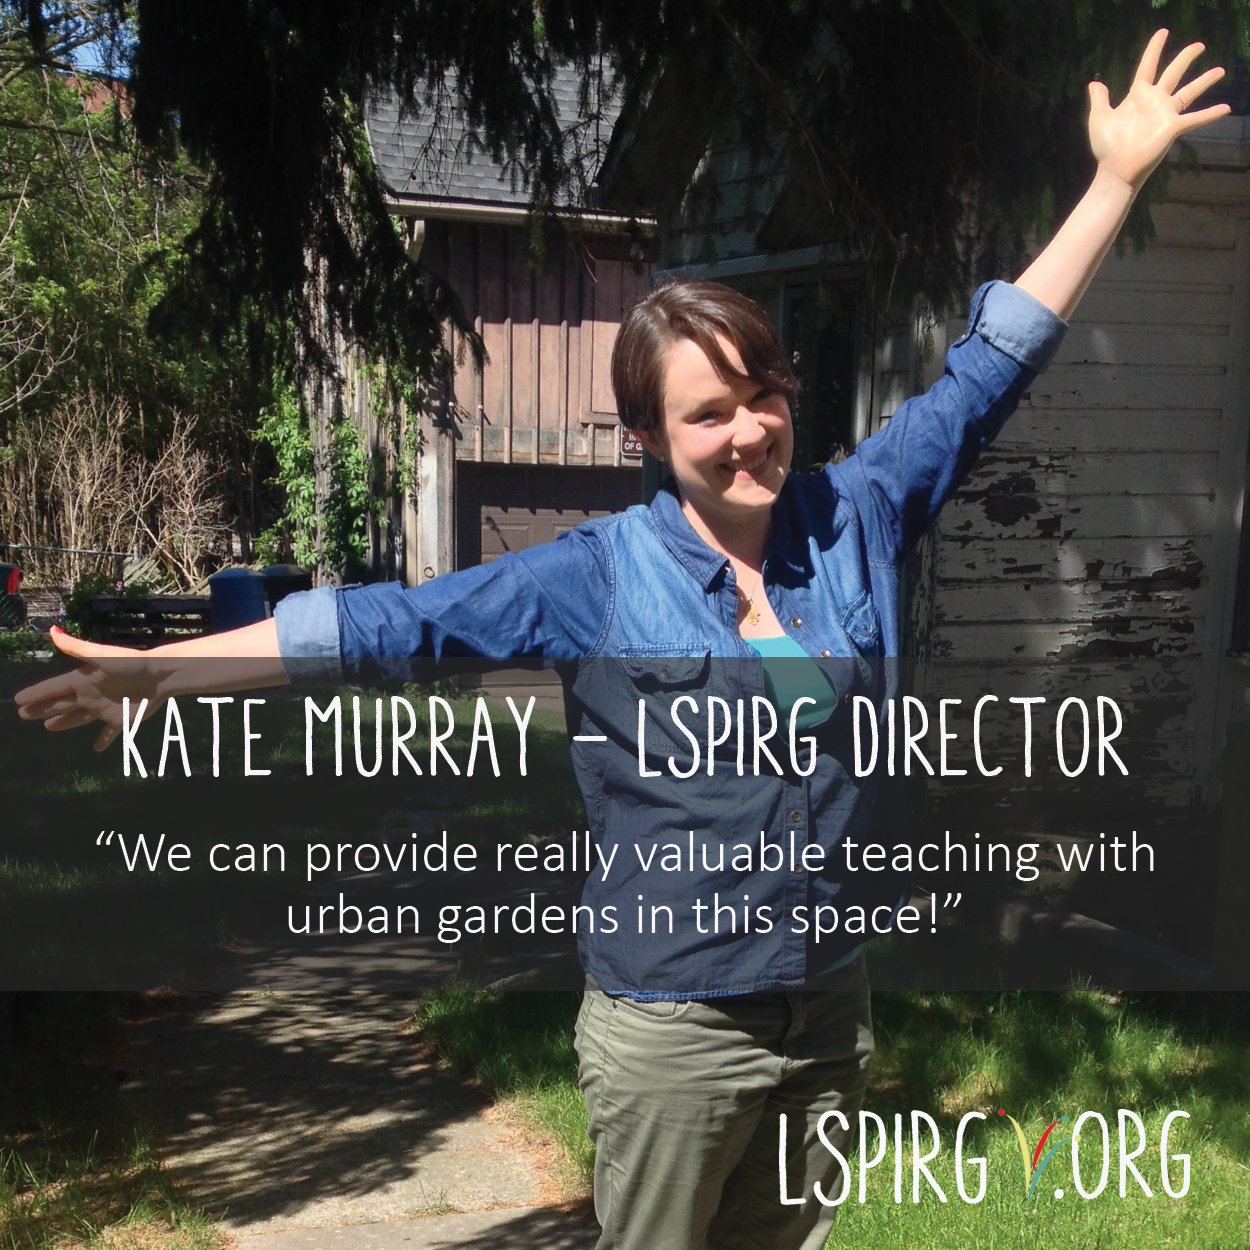 Admin & Development Director, Kate Murray speaks on the big plans LSPIRG has for the green space around their office. We hope to provide community gardening, workshops and if we're lucky - some fresh veg!